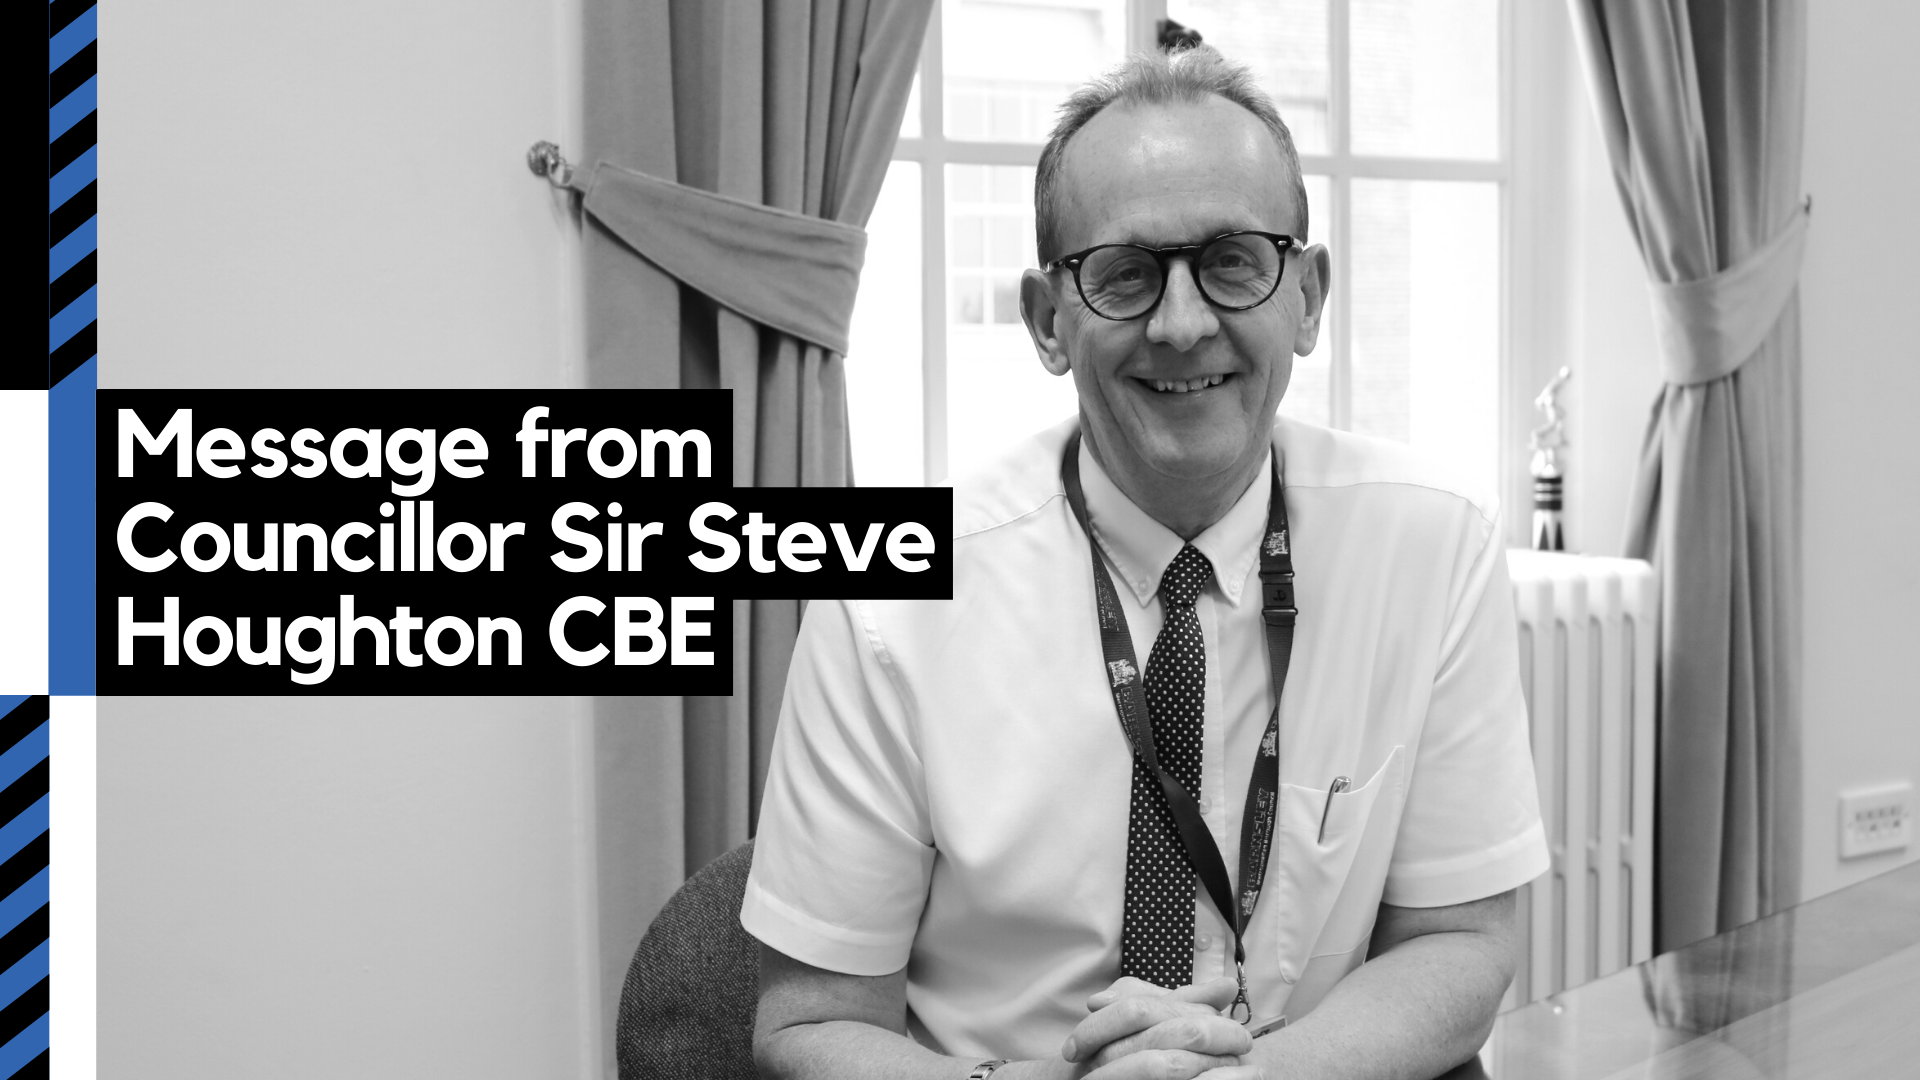 Photo of Councillor Sir Steve Houghton CBE sat at his desk